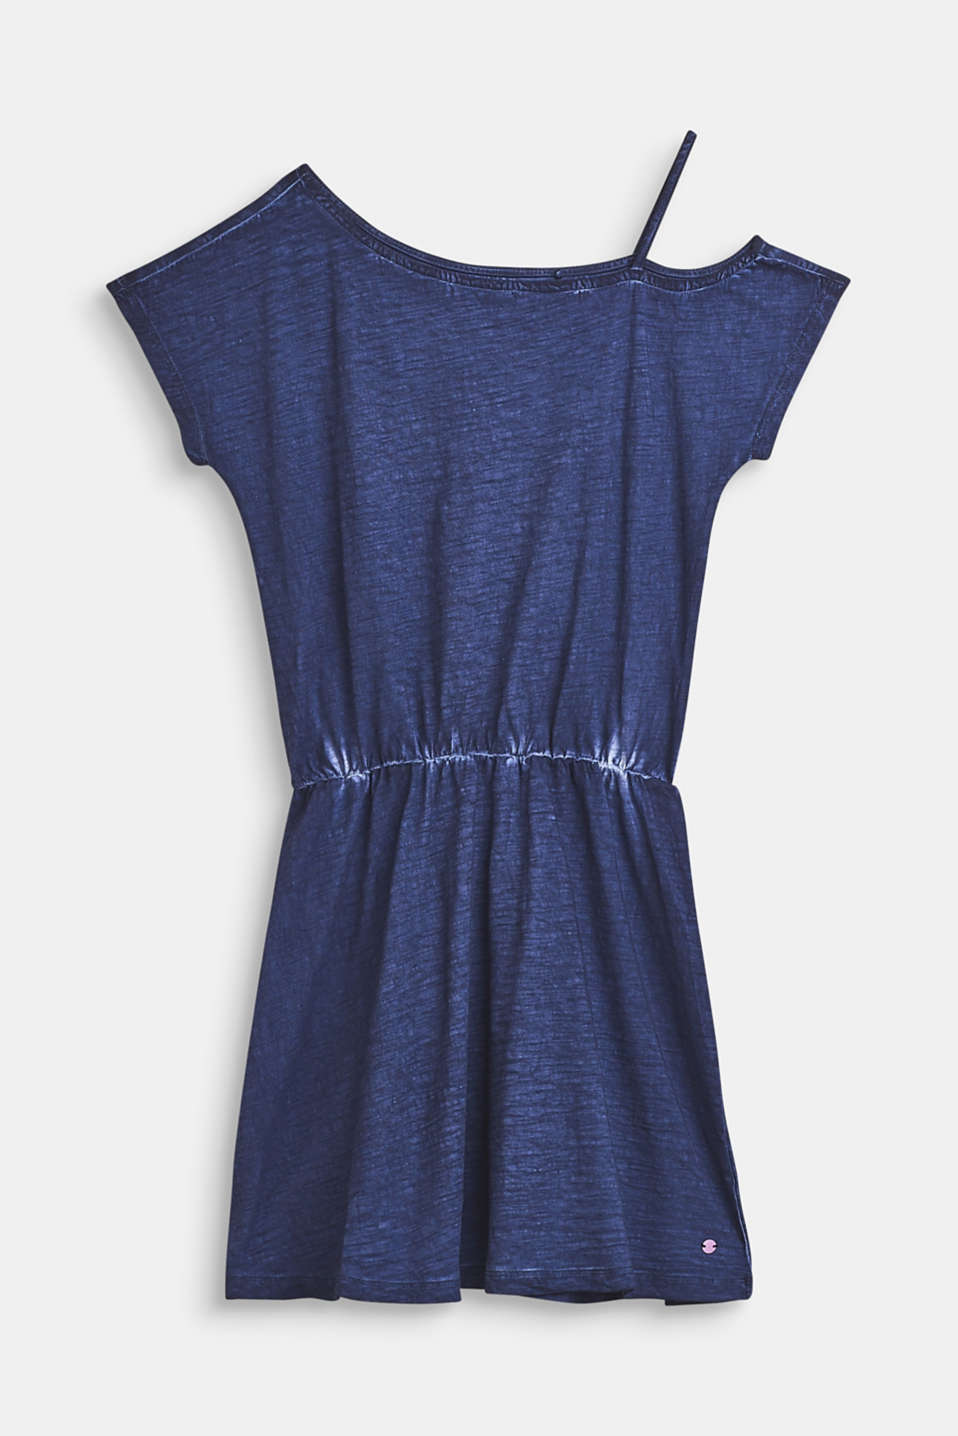 Esprit - Dress with a casual dye, 100% cotton